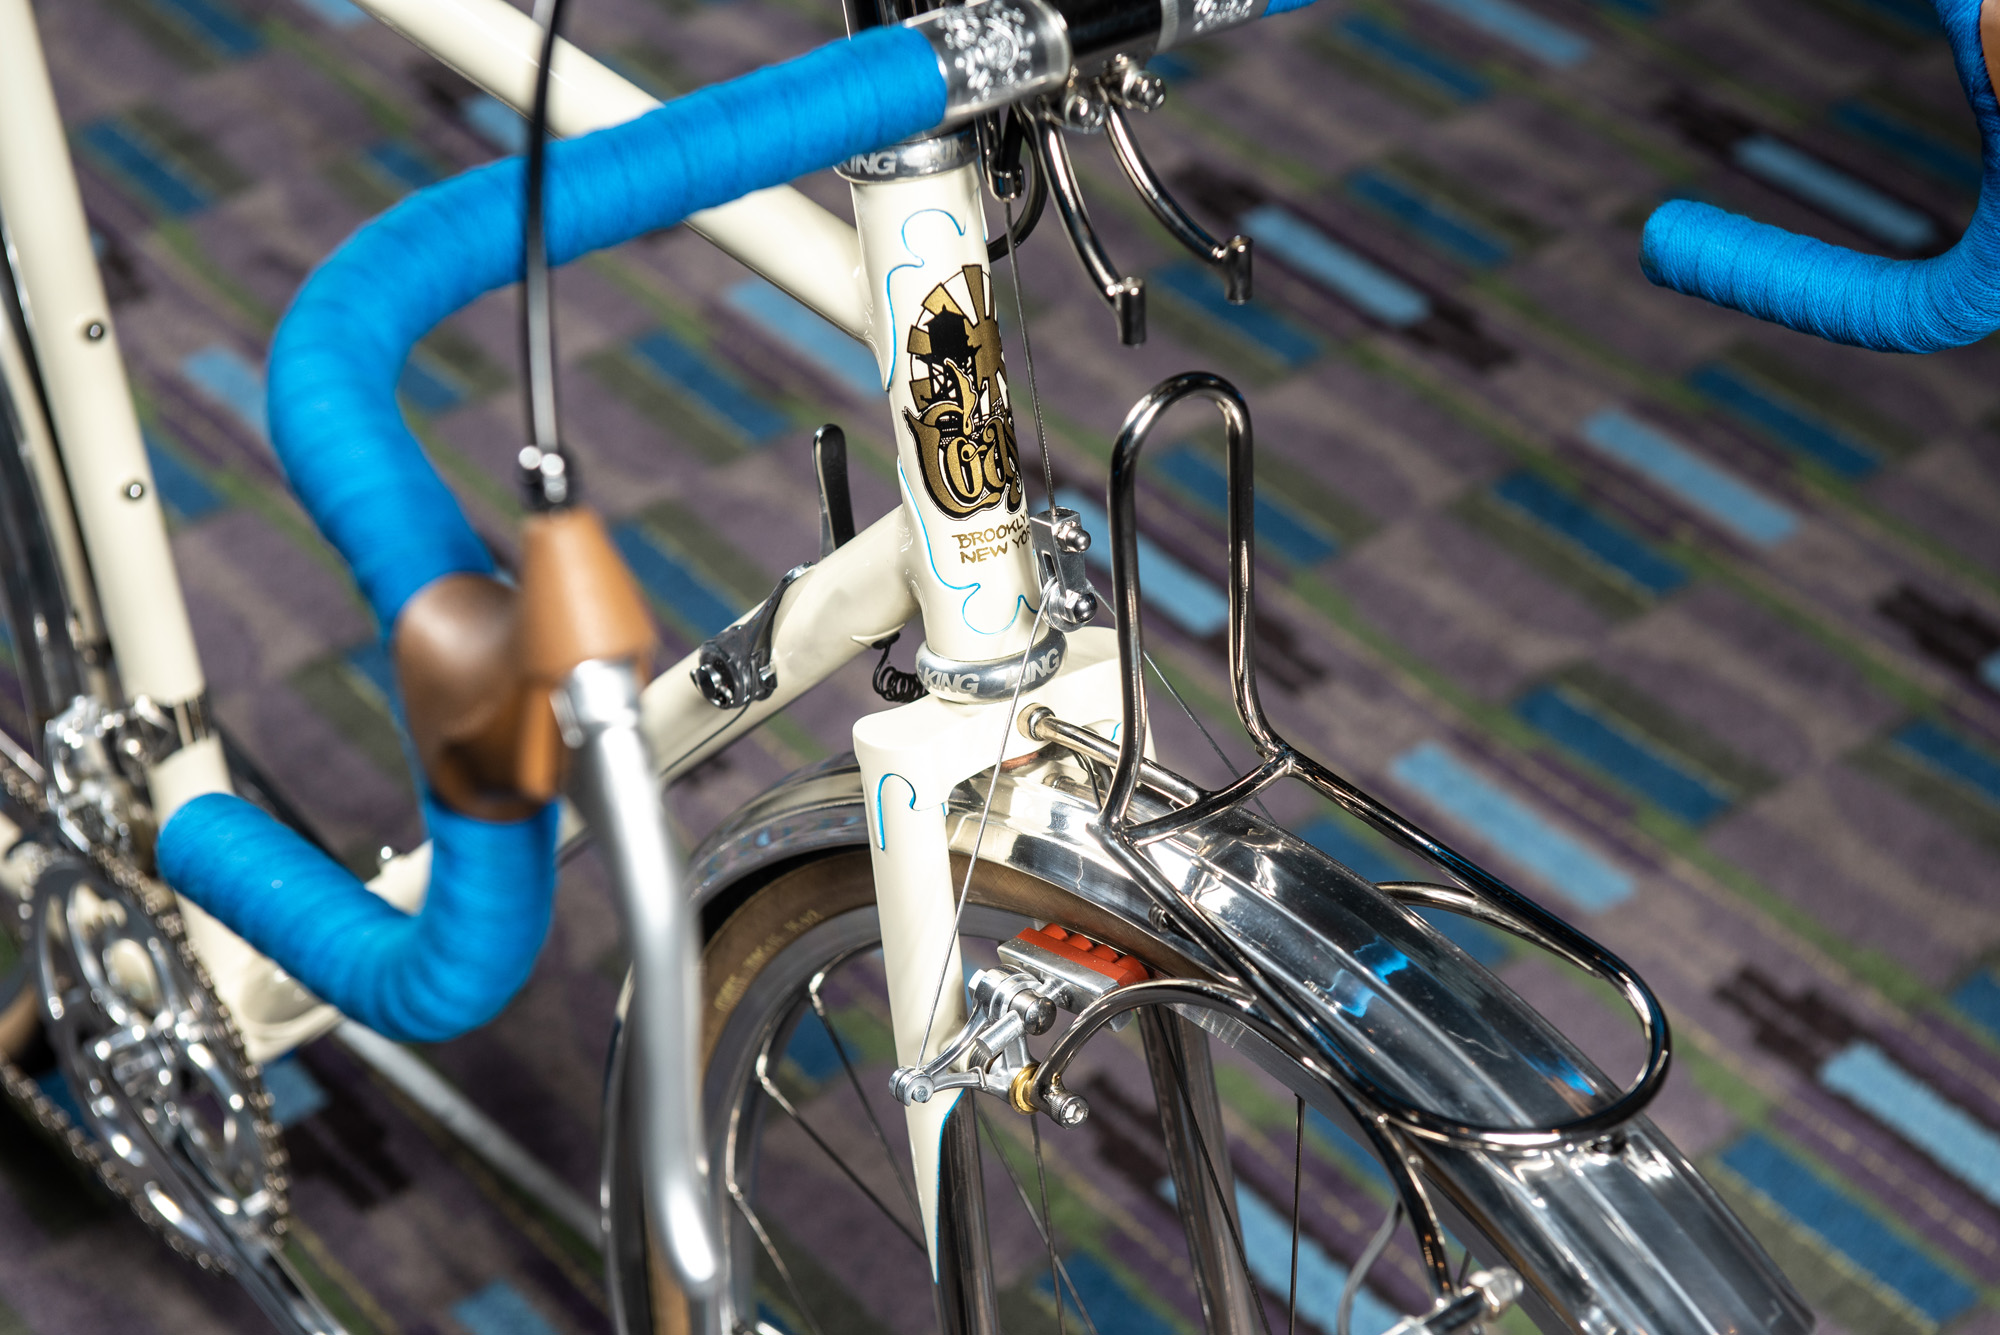 coast_philly_bike_expo_2018_bq-137.jpg